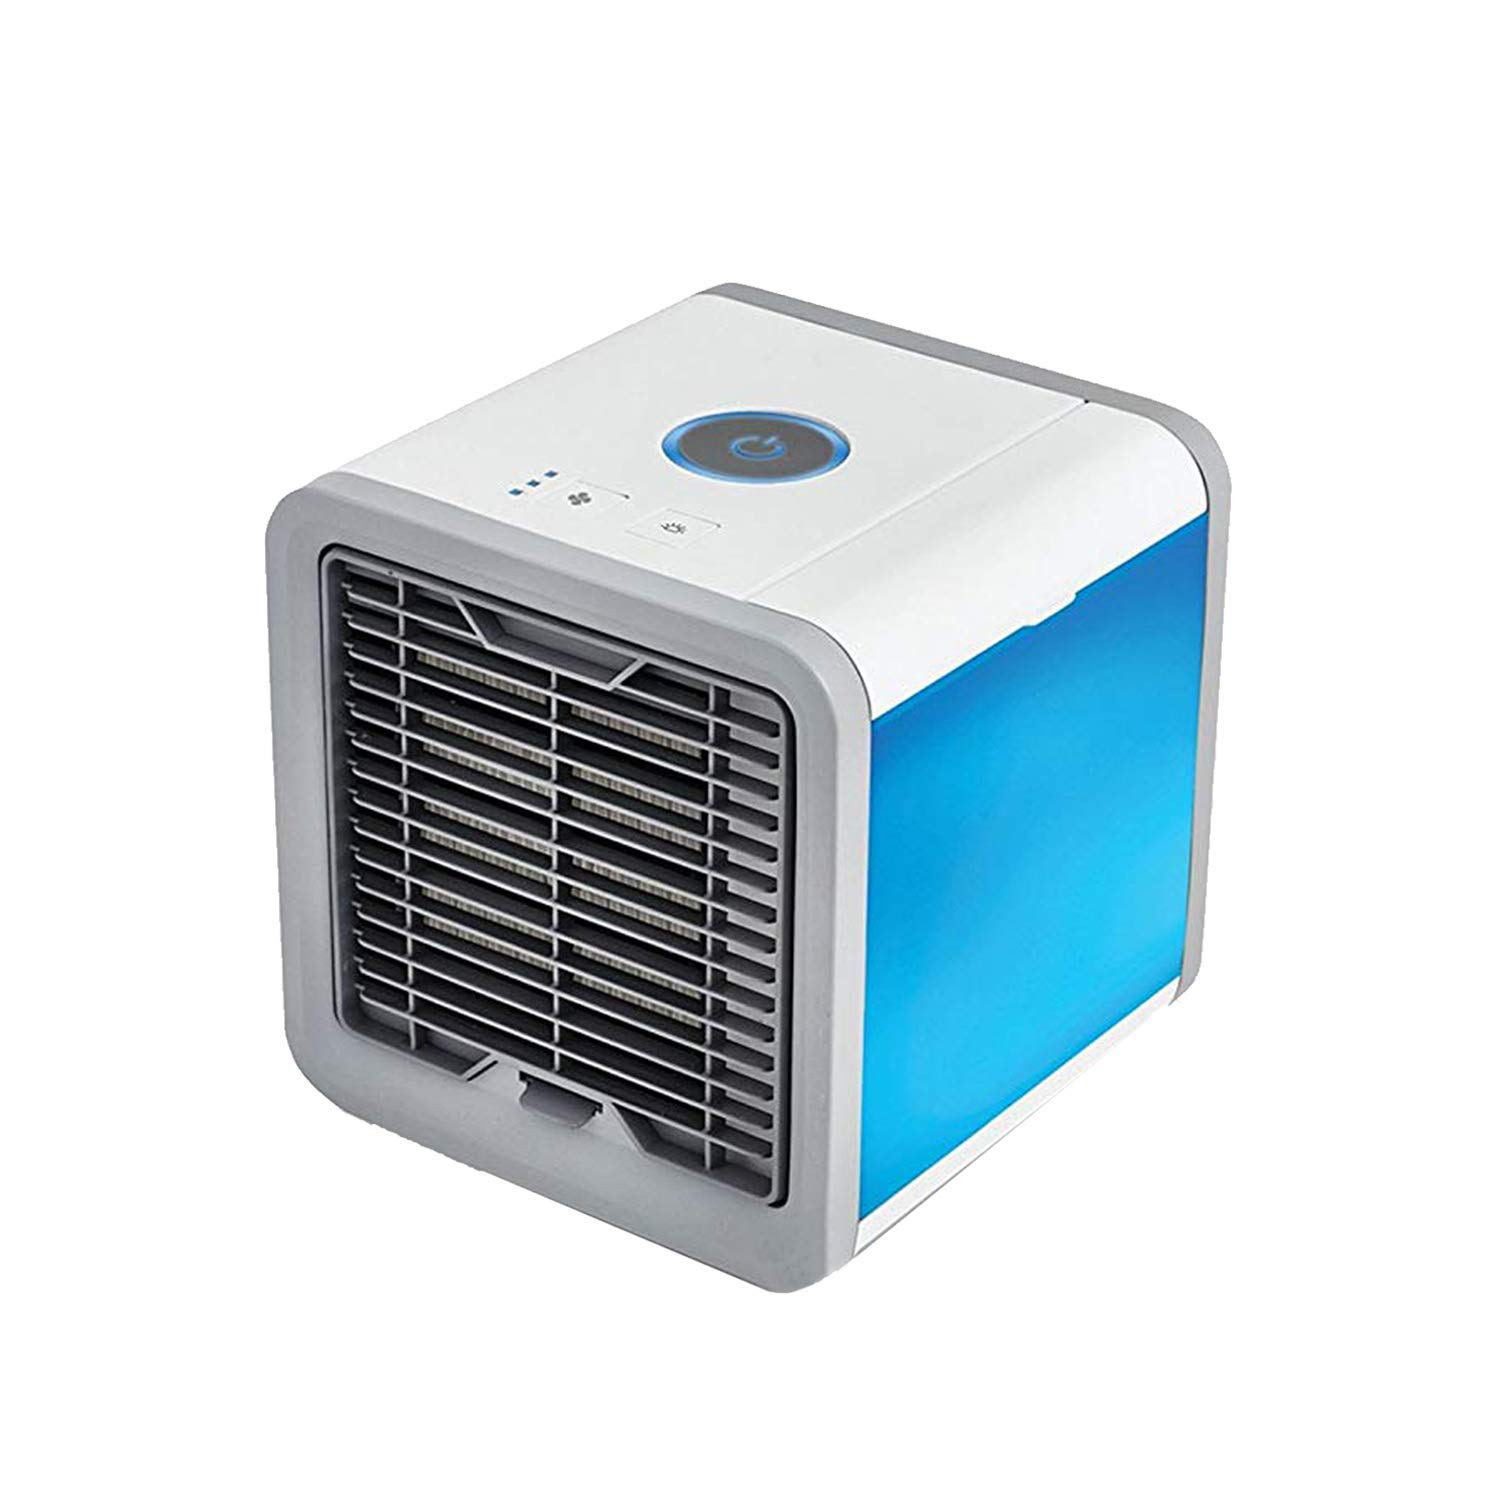 Portable Air Conditioner Mini Fan- Personal Mini Air Conditioner, USB Portable Personal Space Air Cooler Humidifier Purifier with 7 Colors LED 3 Fan Speeds, Cooling Fan for Office Home Outdoor